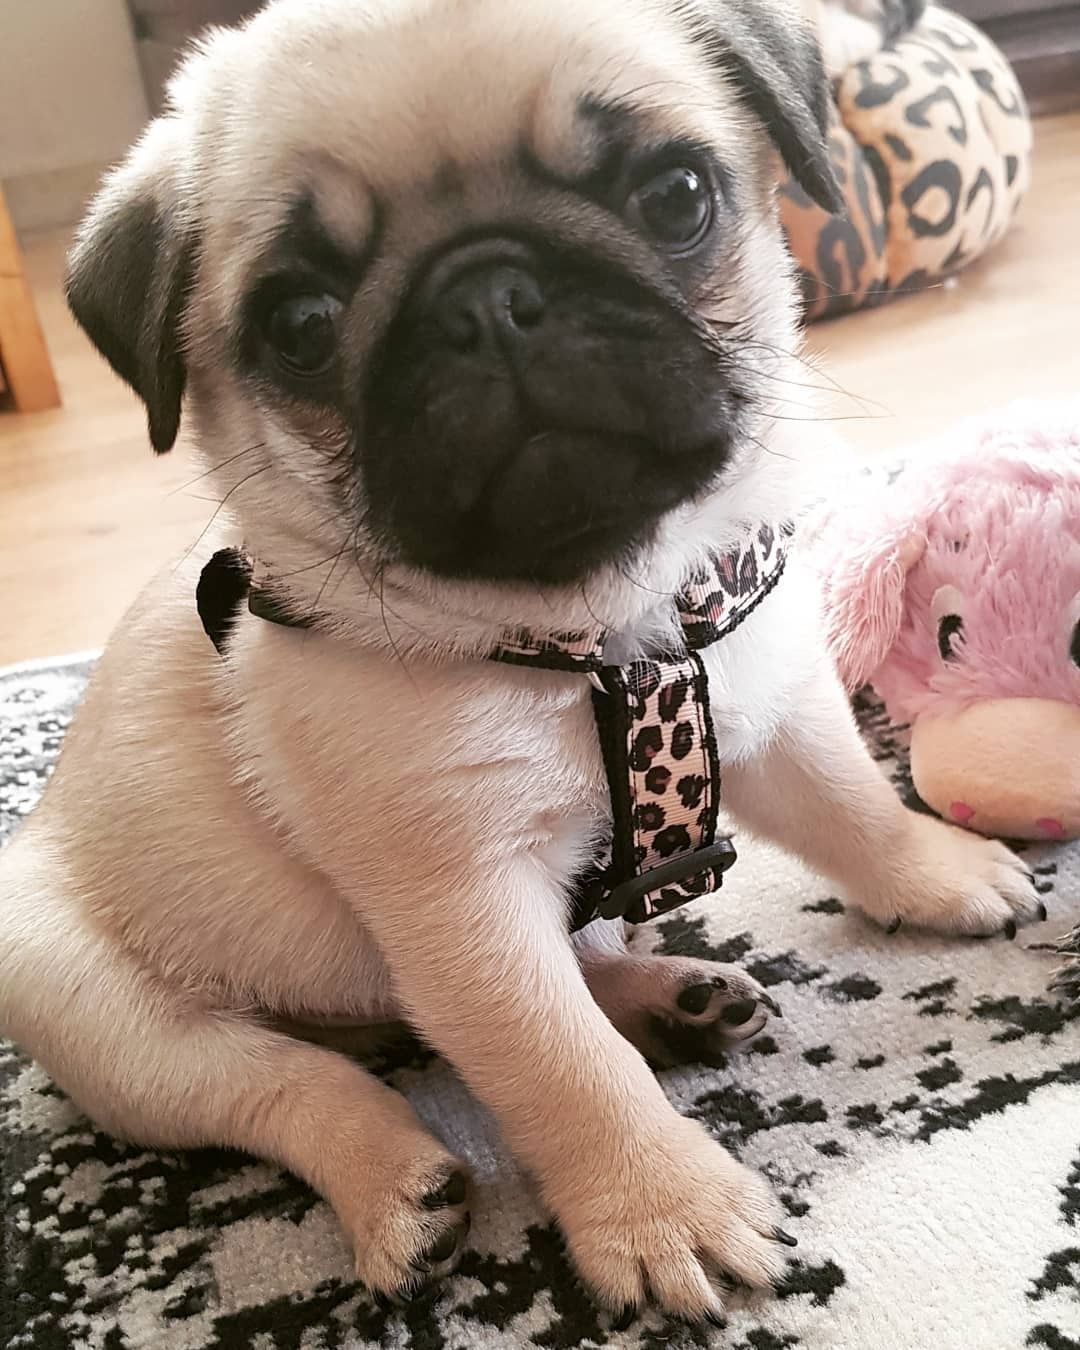 Animal Cuteness Image By Virginia Barends Cute Pug Puppies Cute